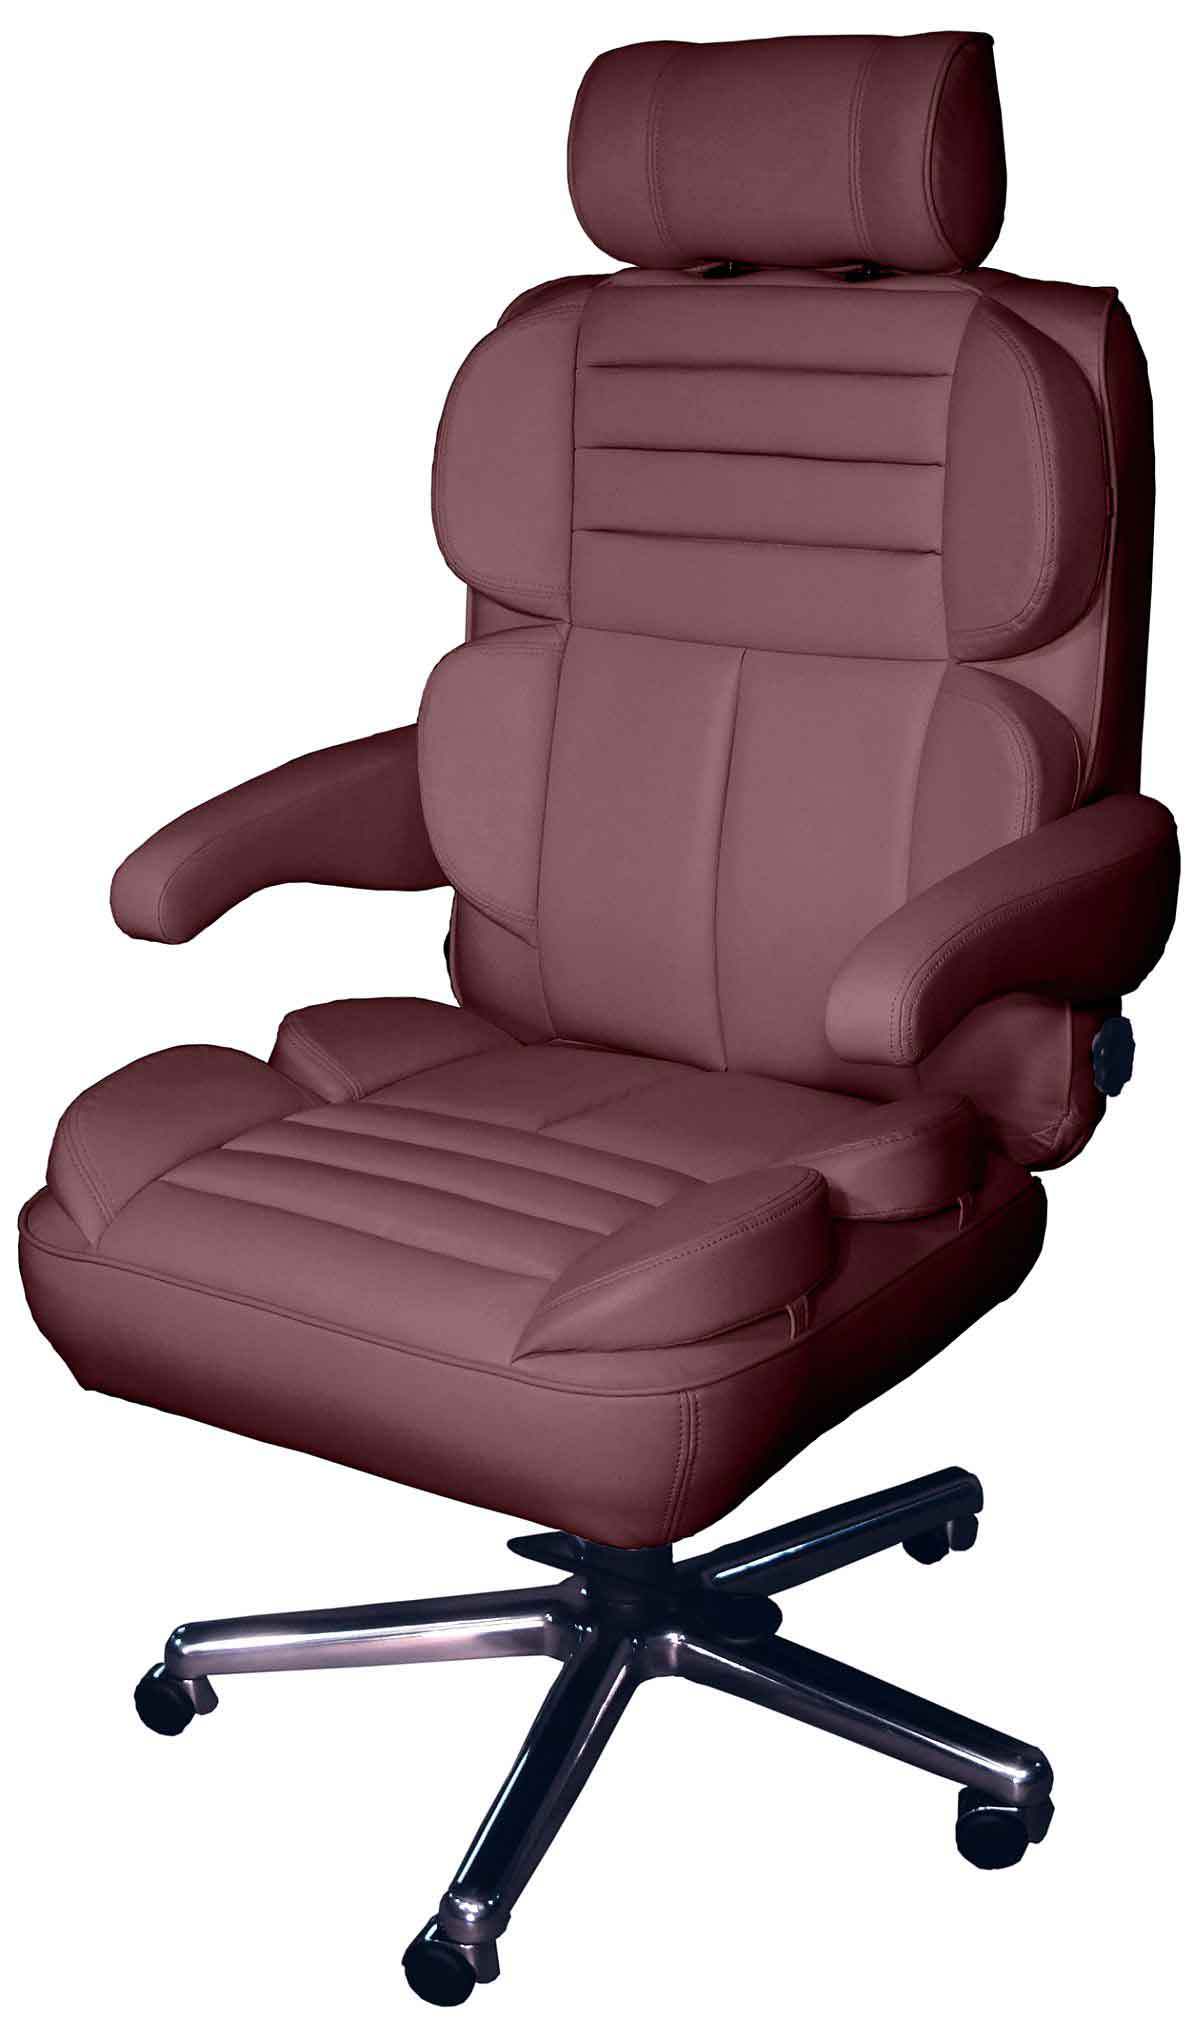 Full Adjustable Big and Tall Office Chairs